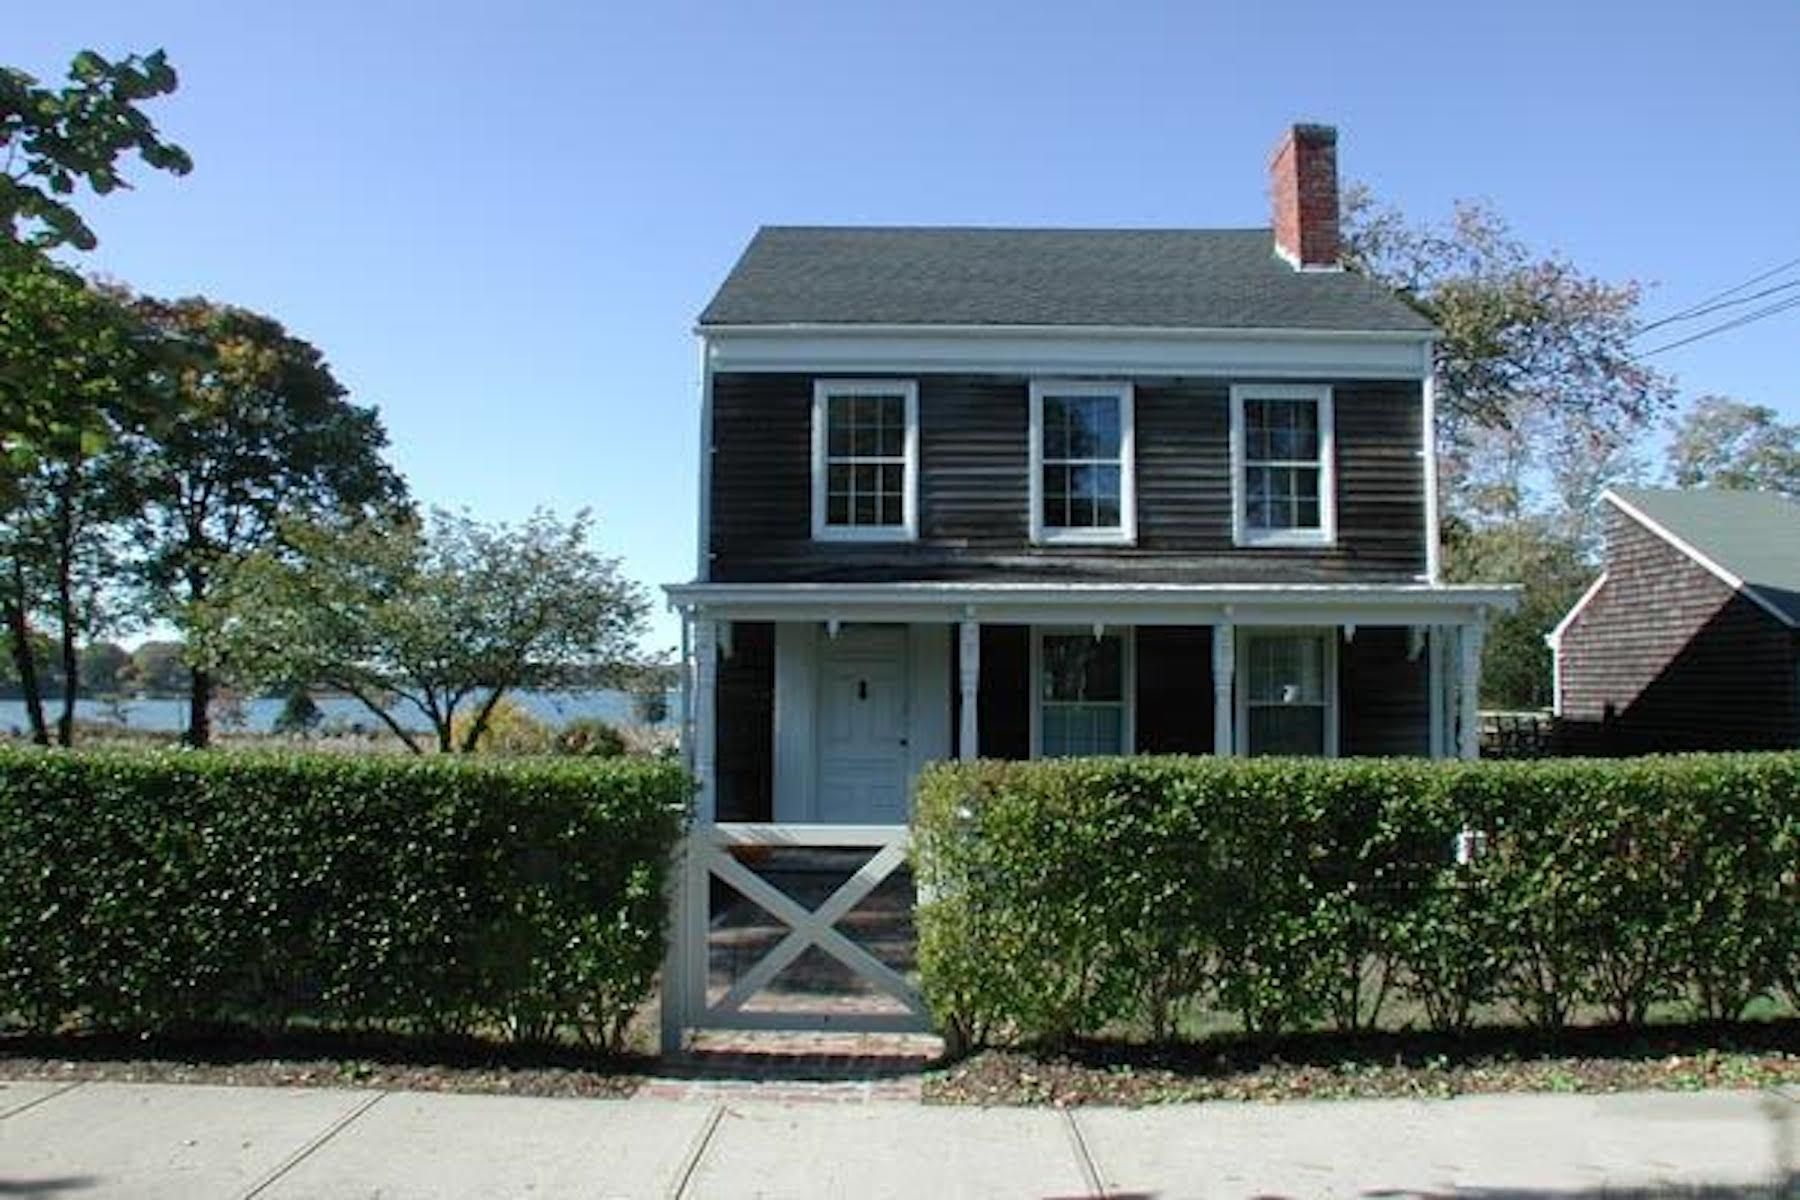 Apartment for Rent at Spectacular Sag Harbor Home 314 Main Street Sag Harbor, New York 11963 United States